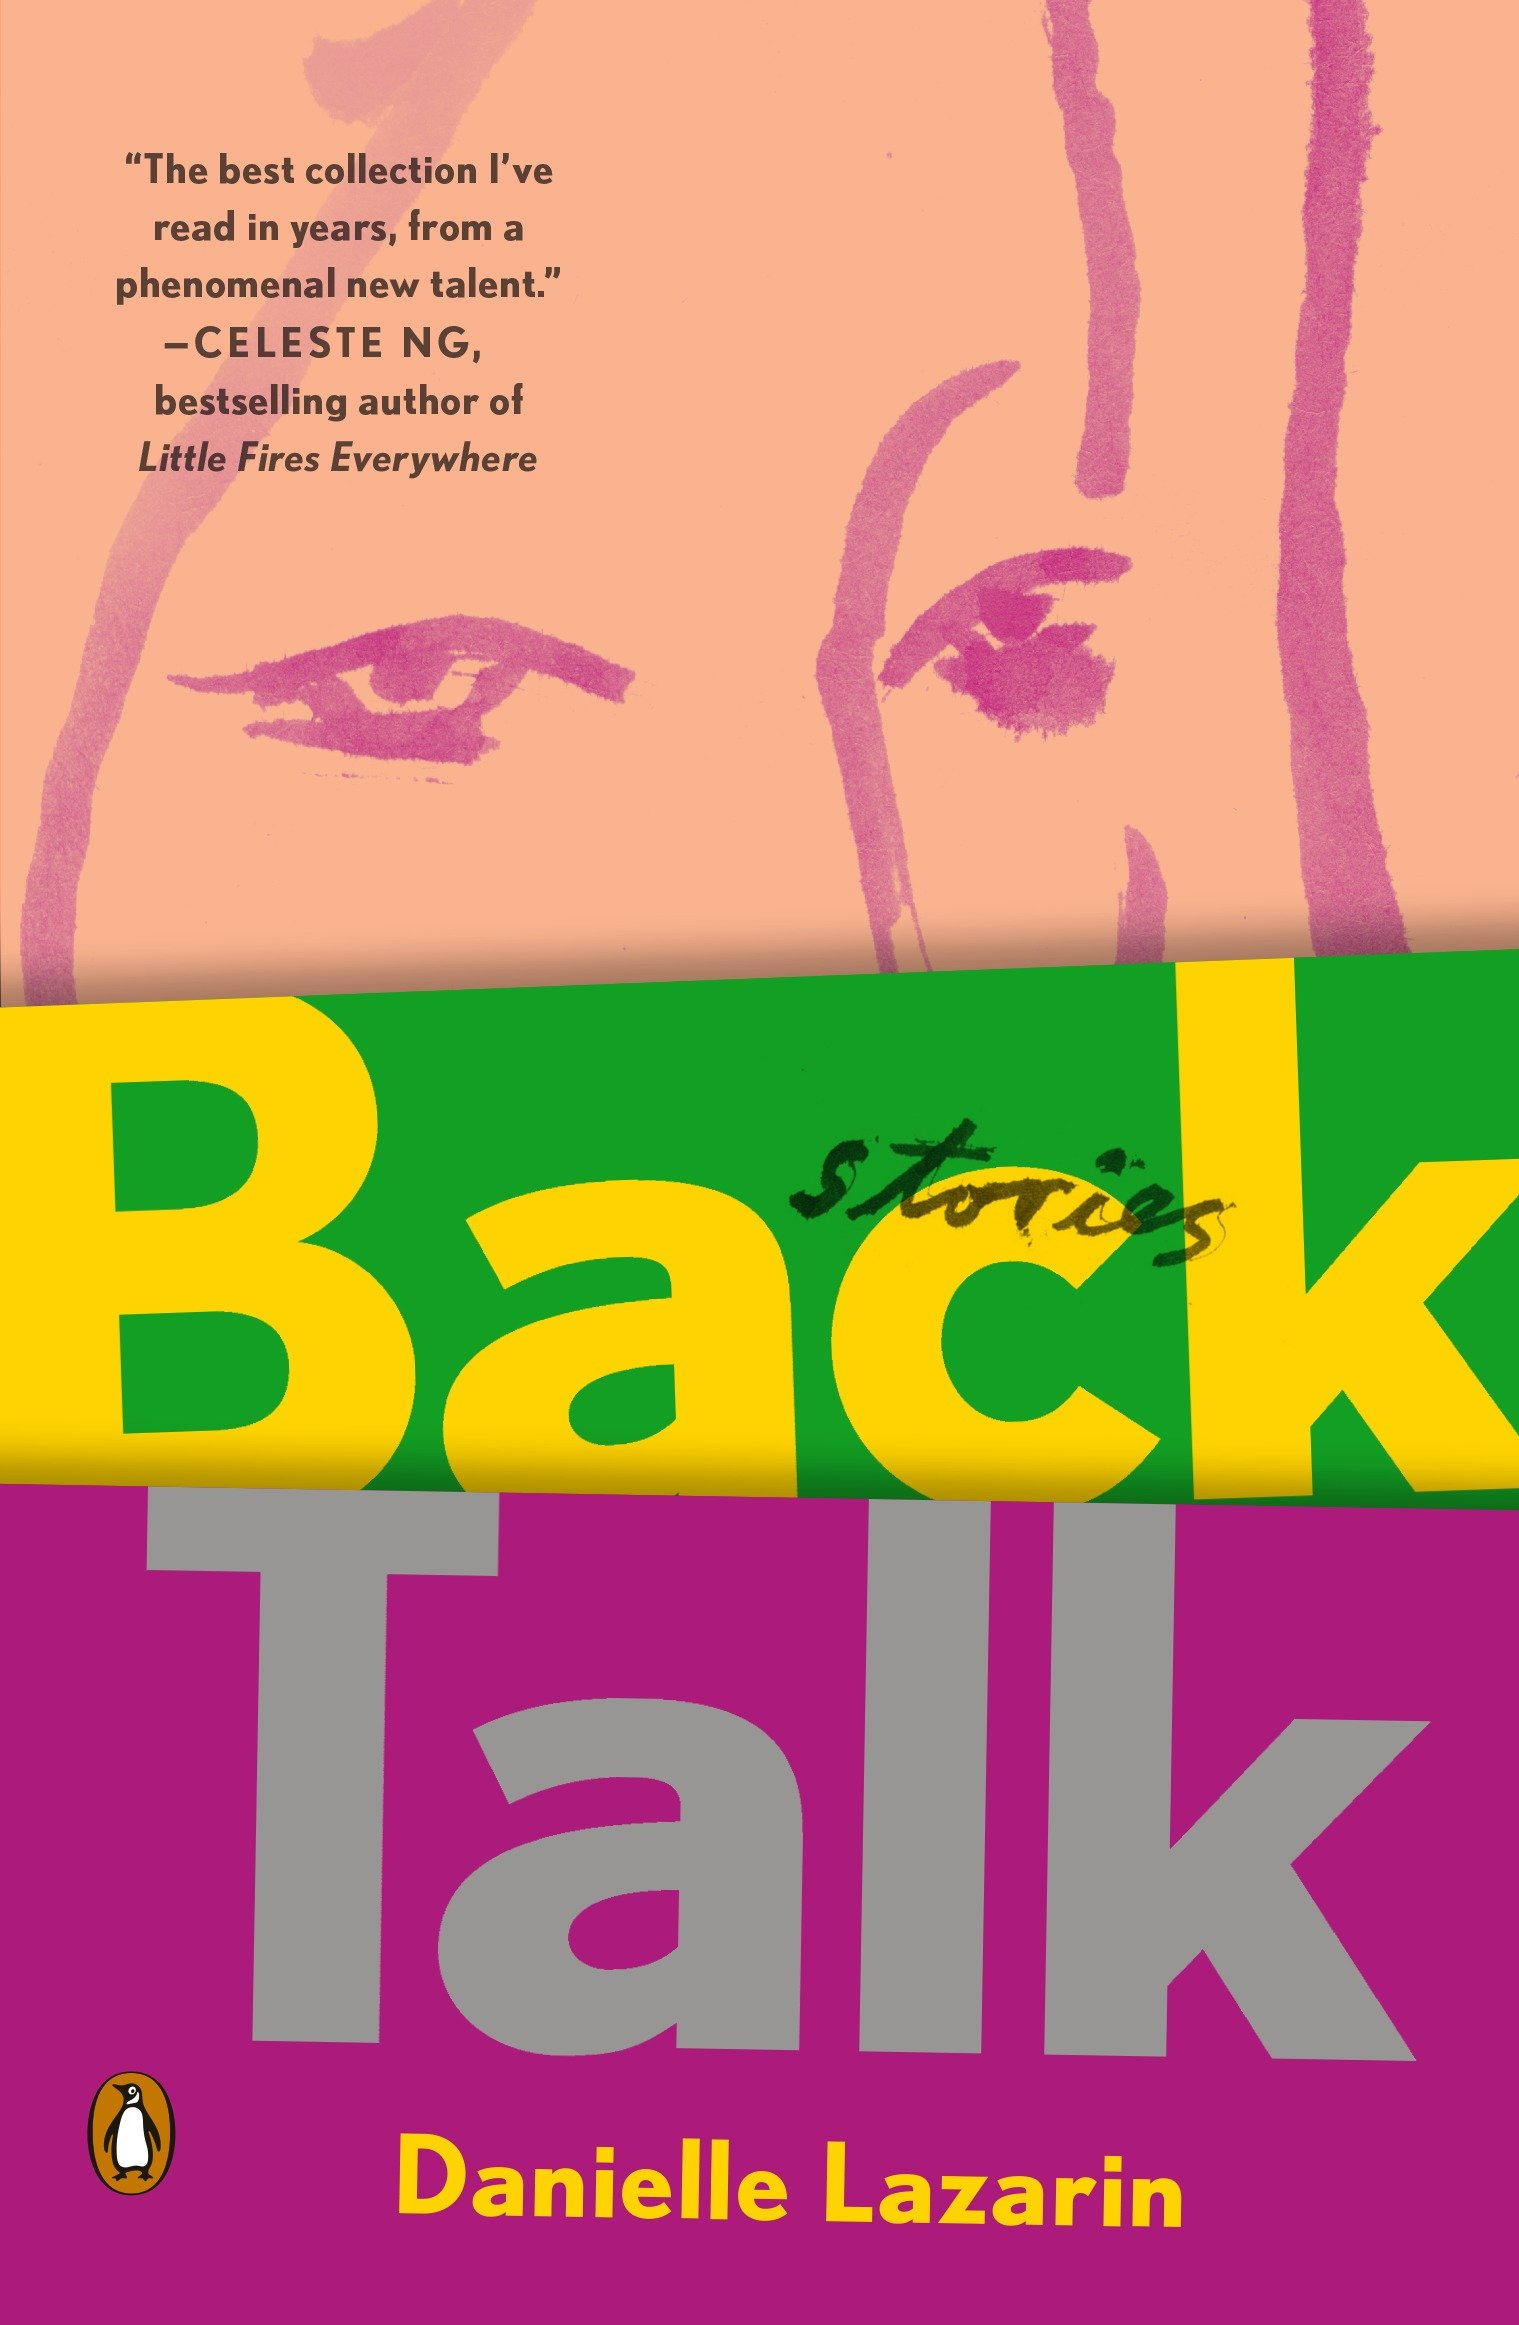 Danielle-Lazarin-2018books-Back-Talk